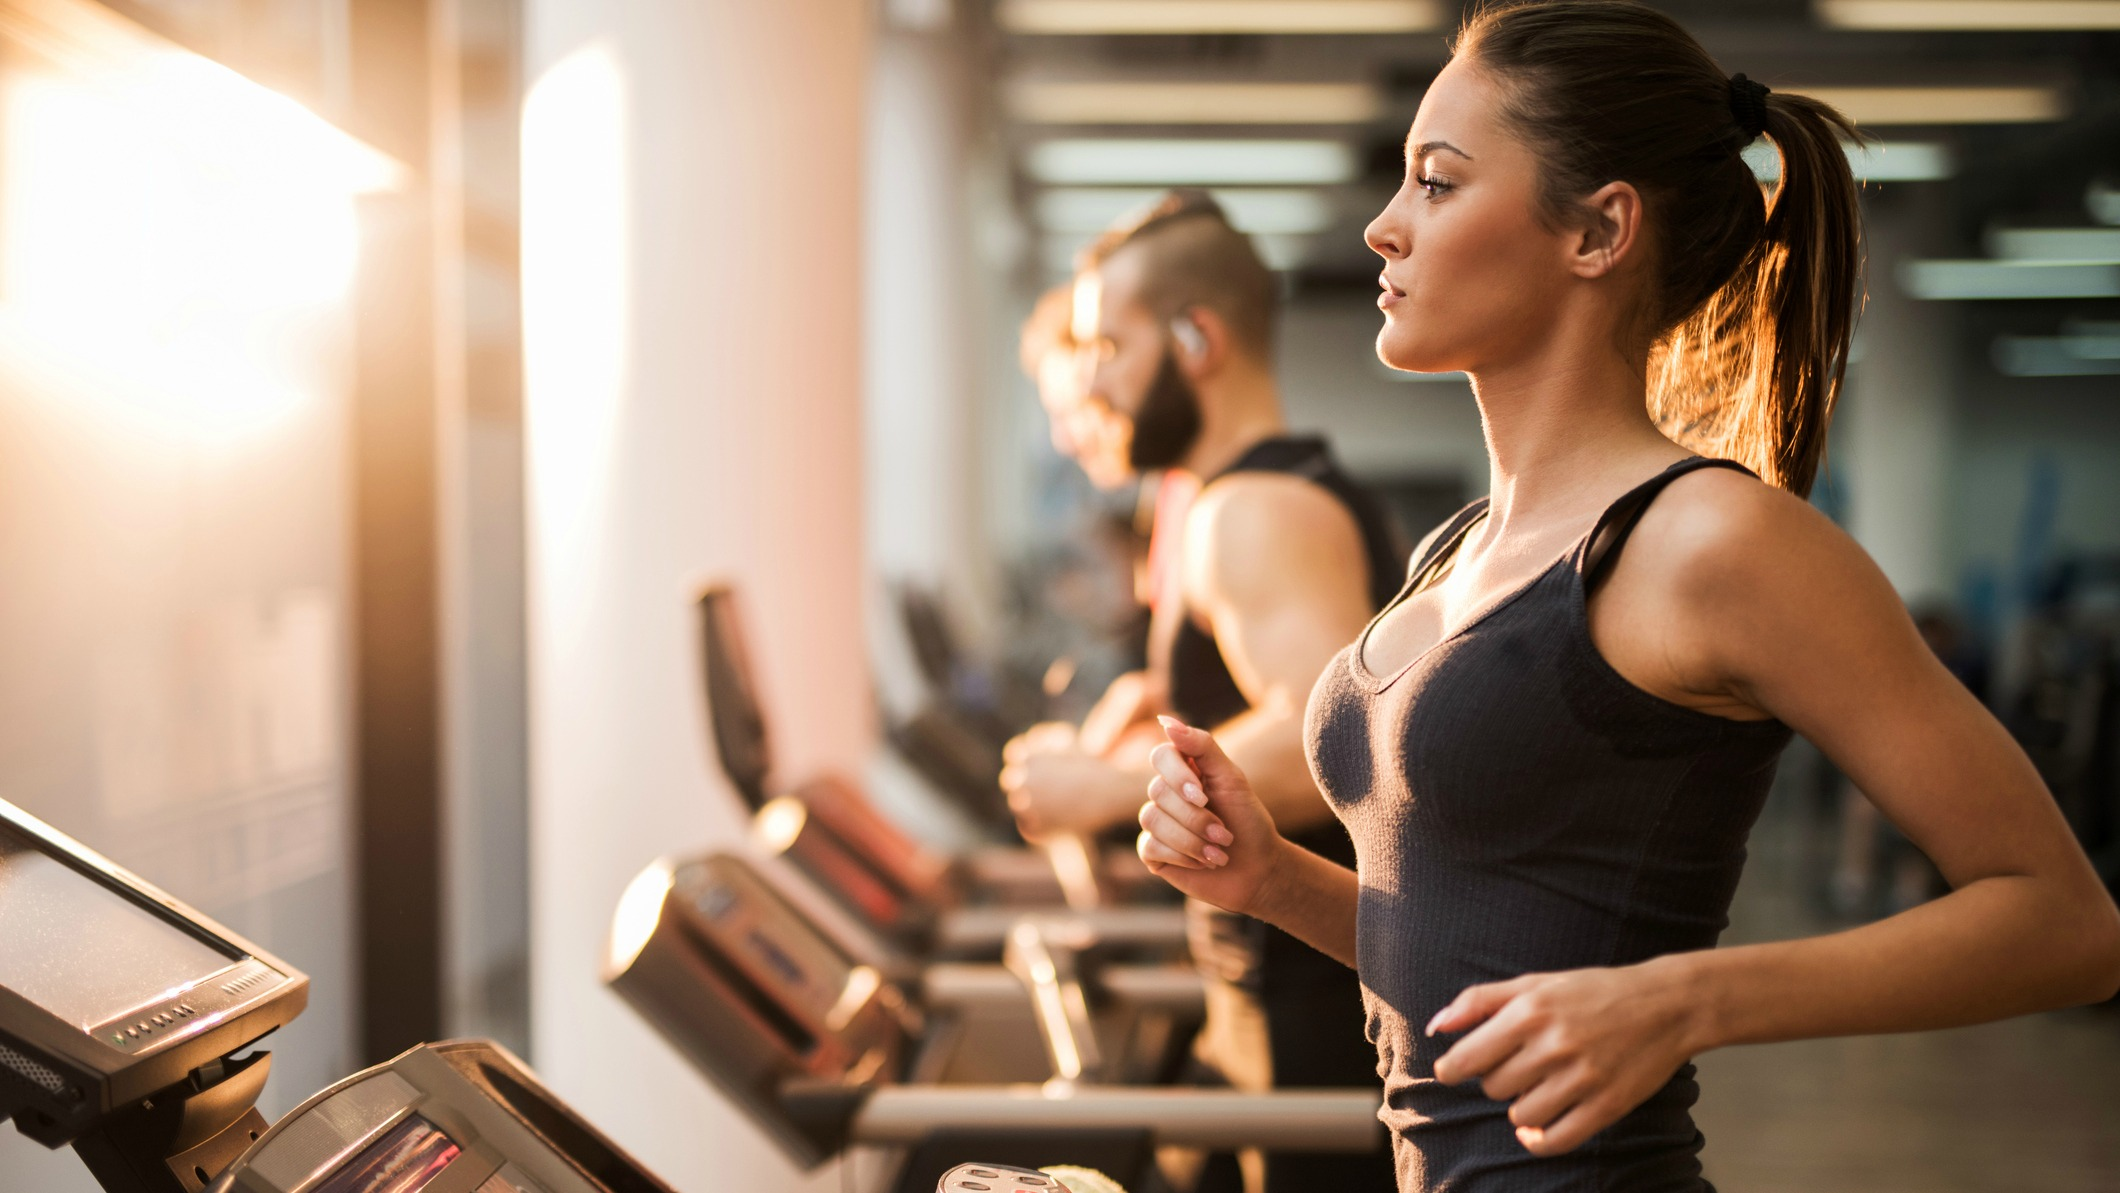 19 Kick-Ass Fitness Quotes to Motivate You